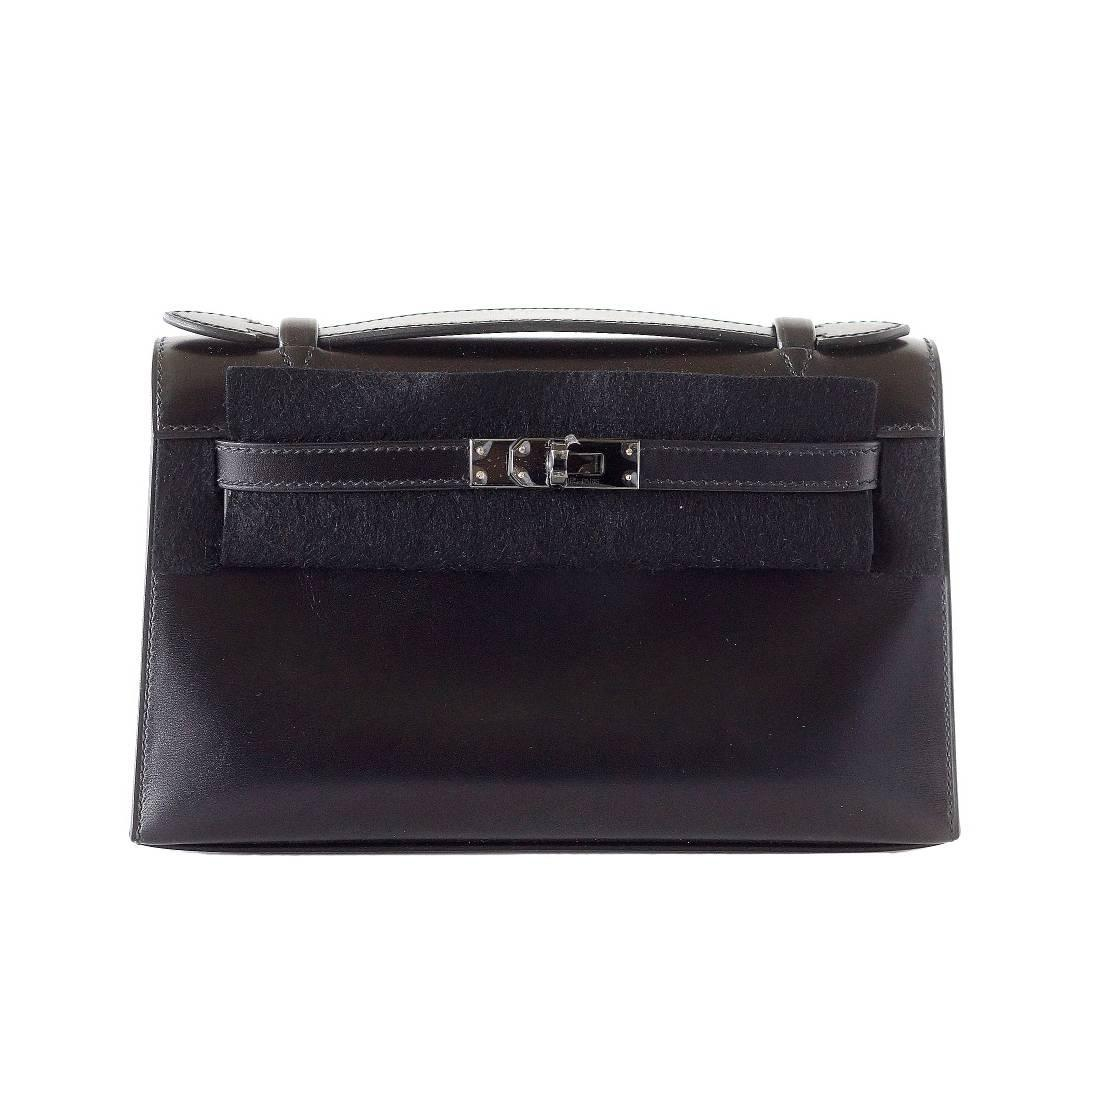 birkin 25 price - Vintage Herm��s Clutches - 143 For Sale at 1stdibs - Page 2